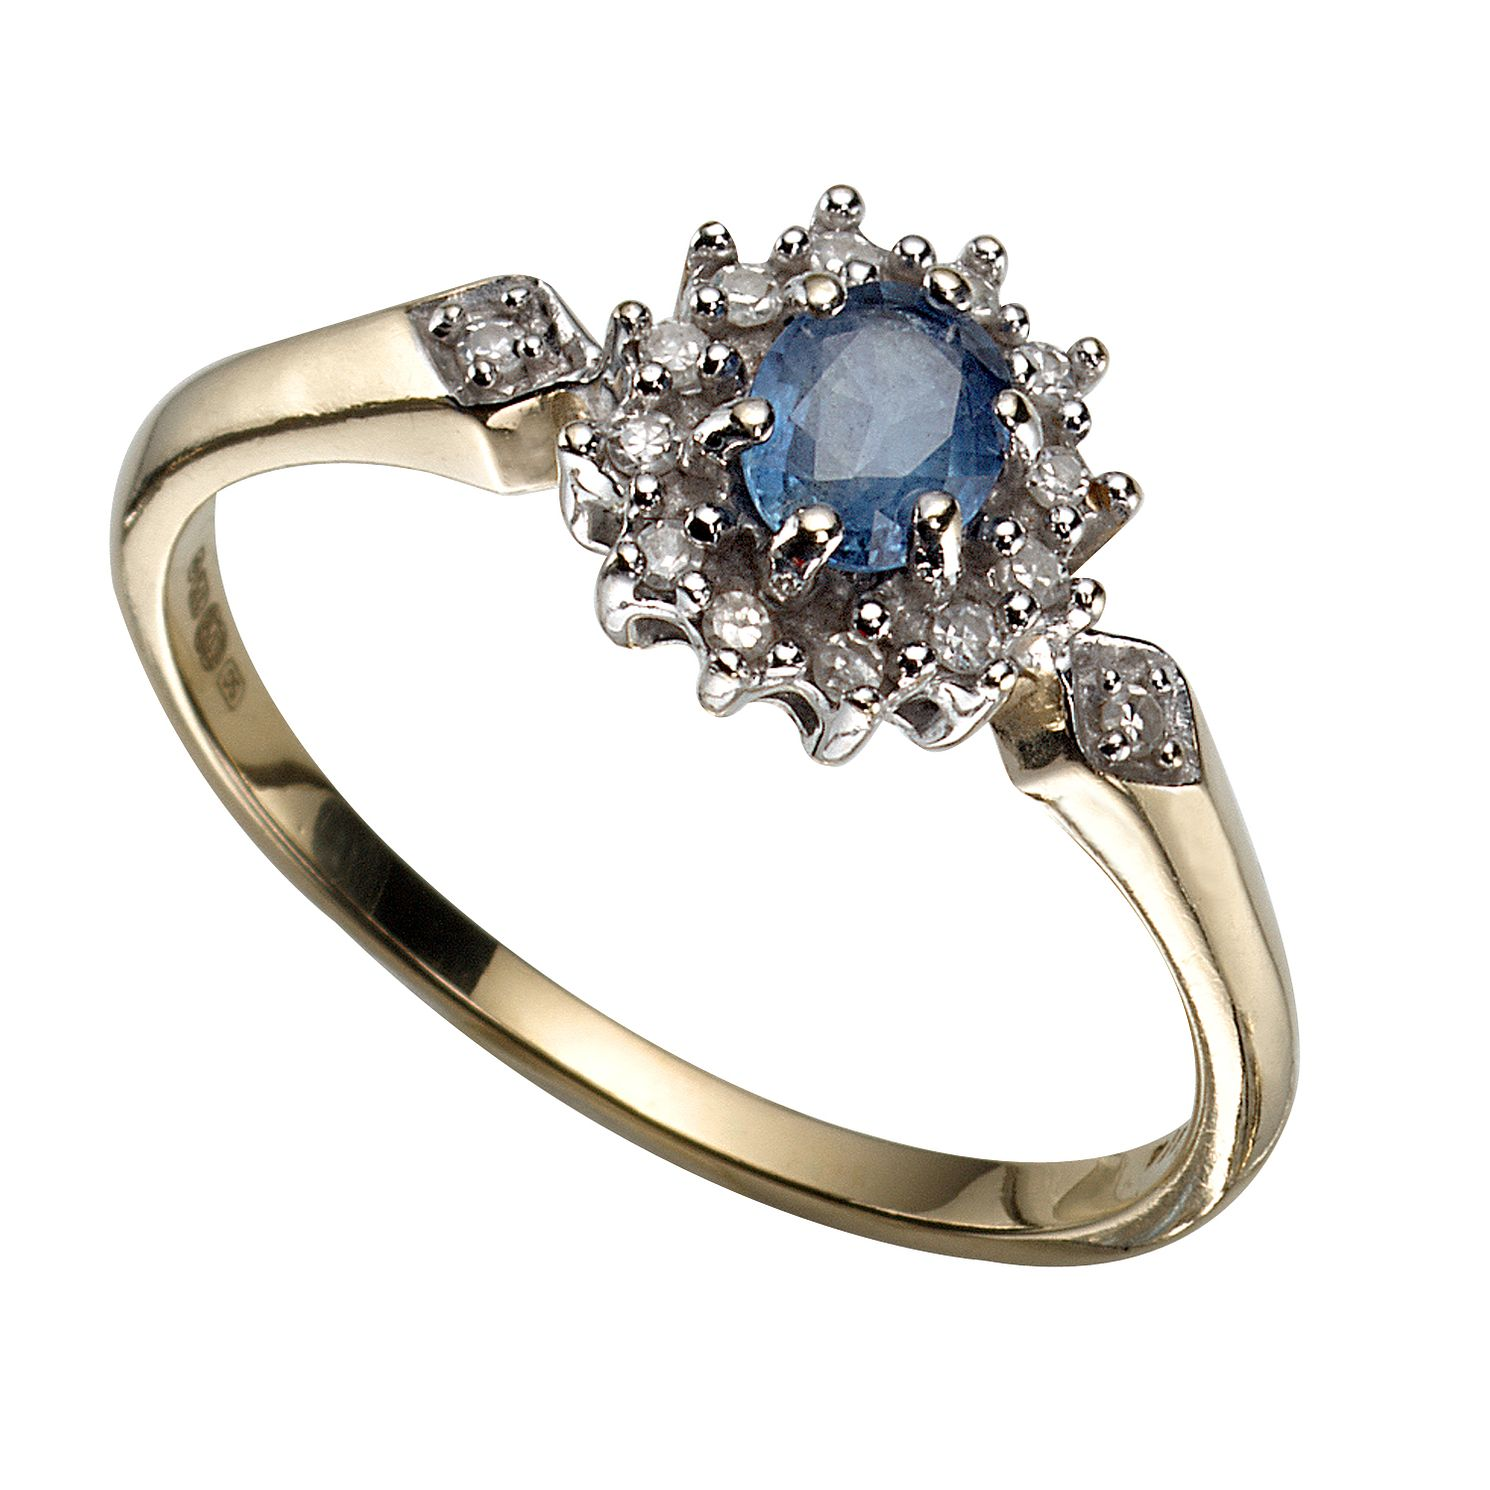 dark product rings l samuel diamond webstore type gold number yellow and stone category jewellery blue h ring sapphire engagement